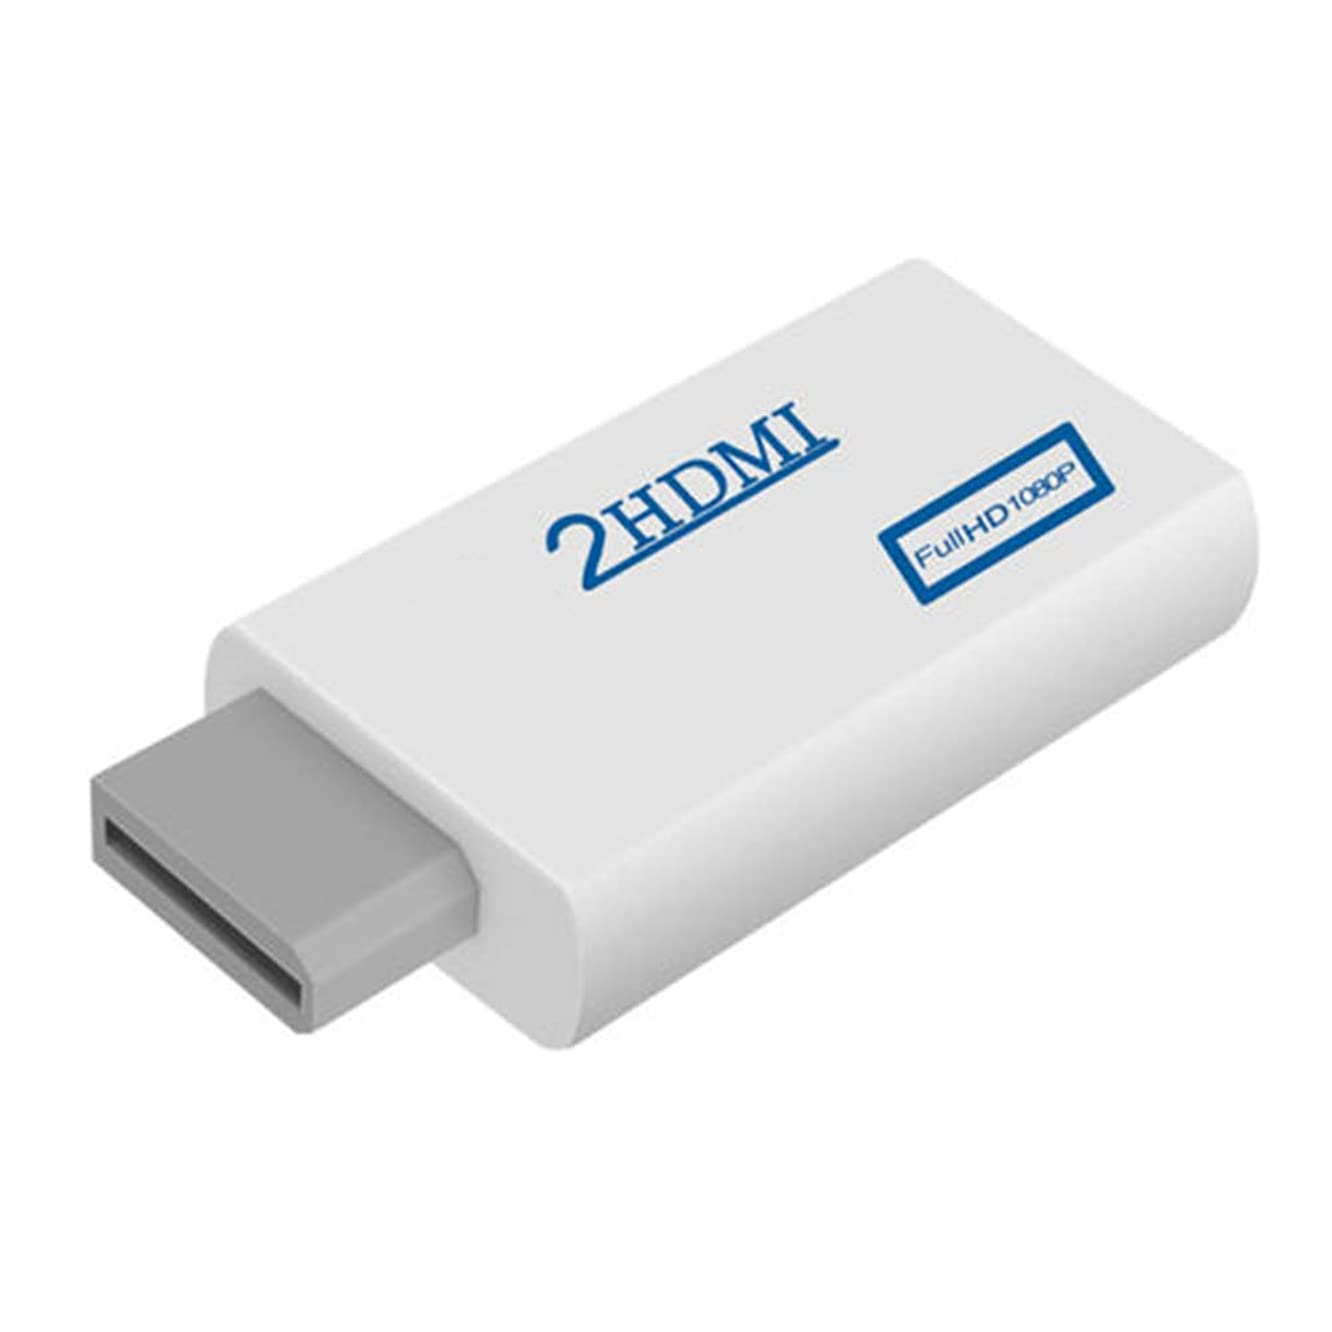 heaven2017 Full HD 1080P 3.5mm Audio Output Jack Converter Adapter for Wii to HDMI White